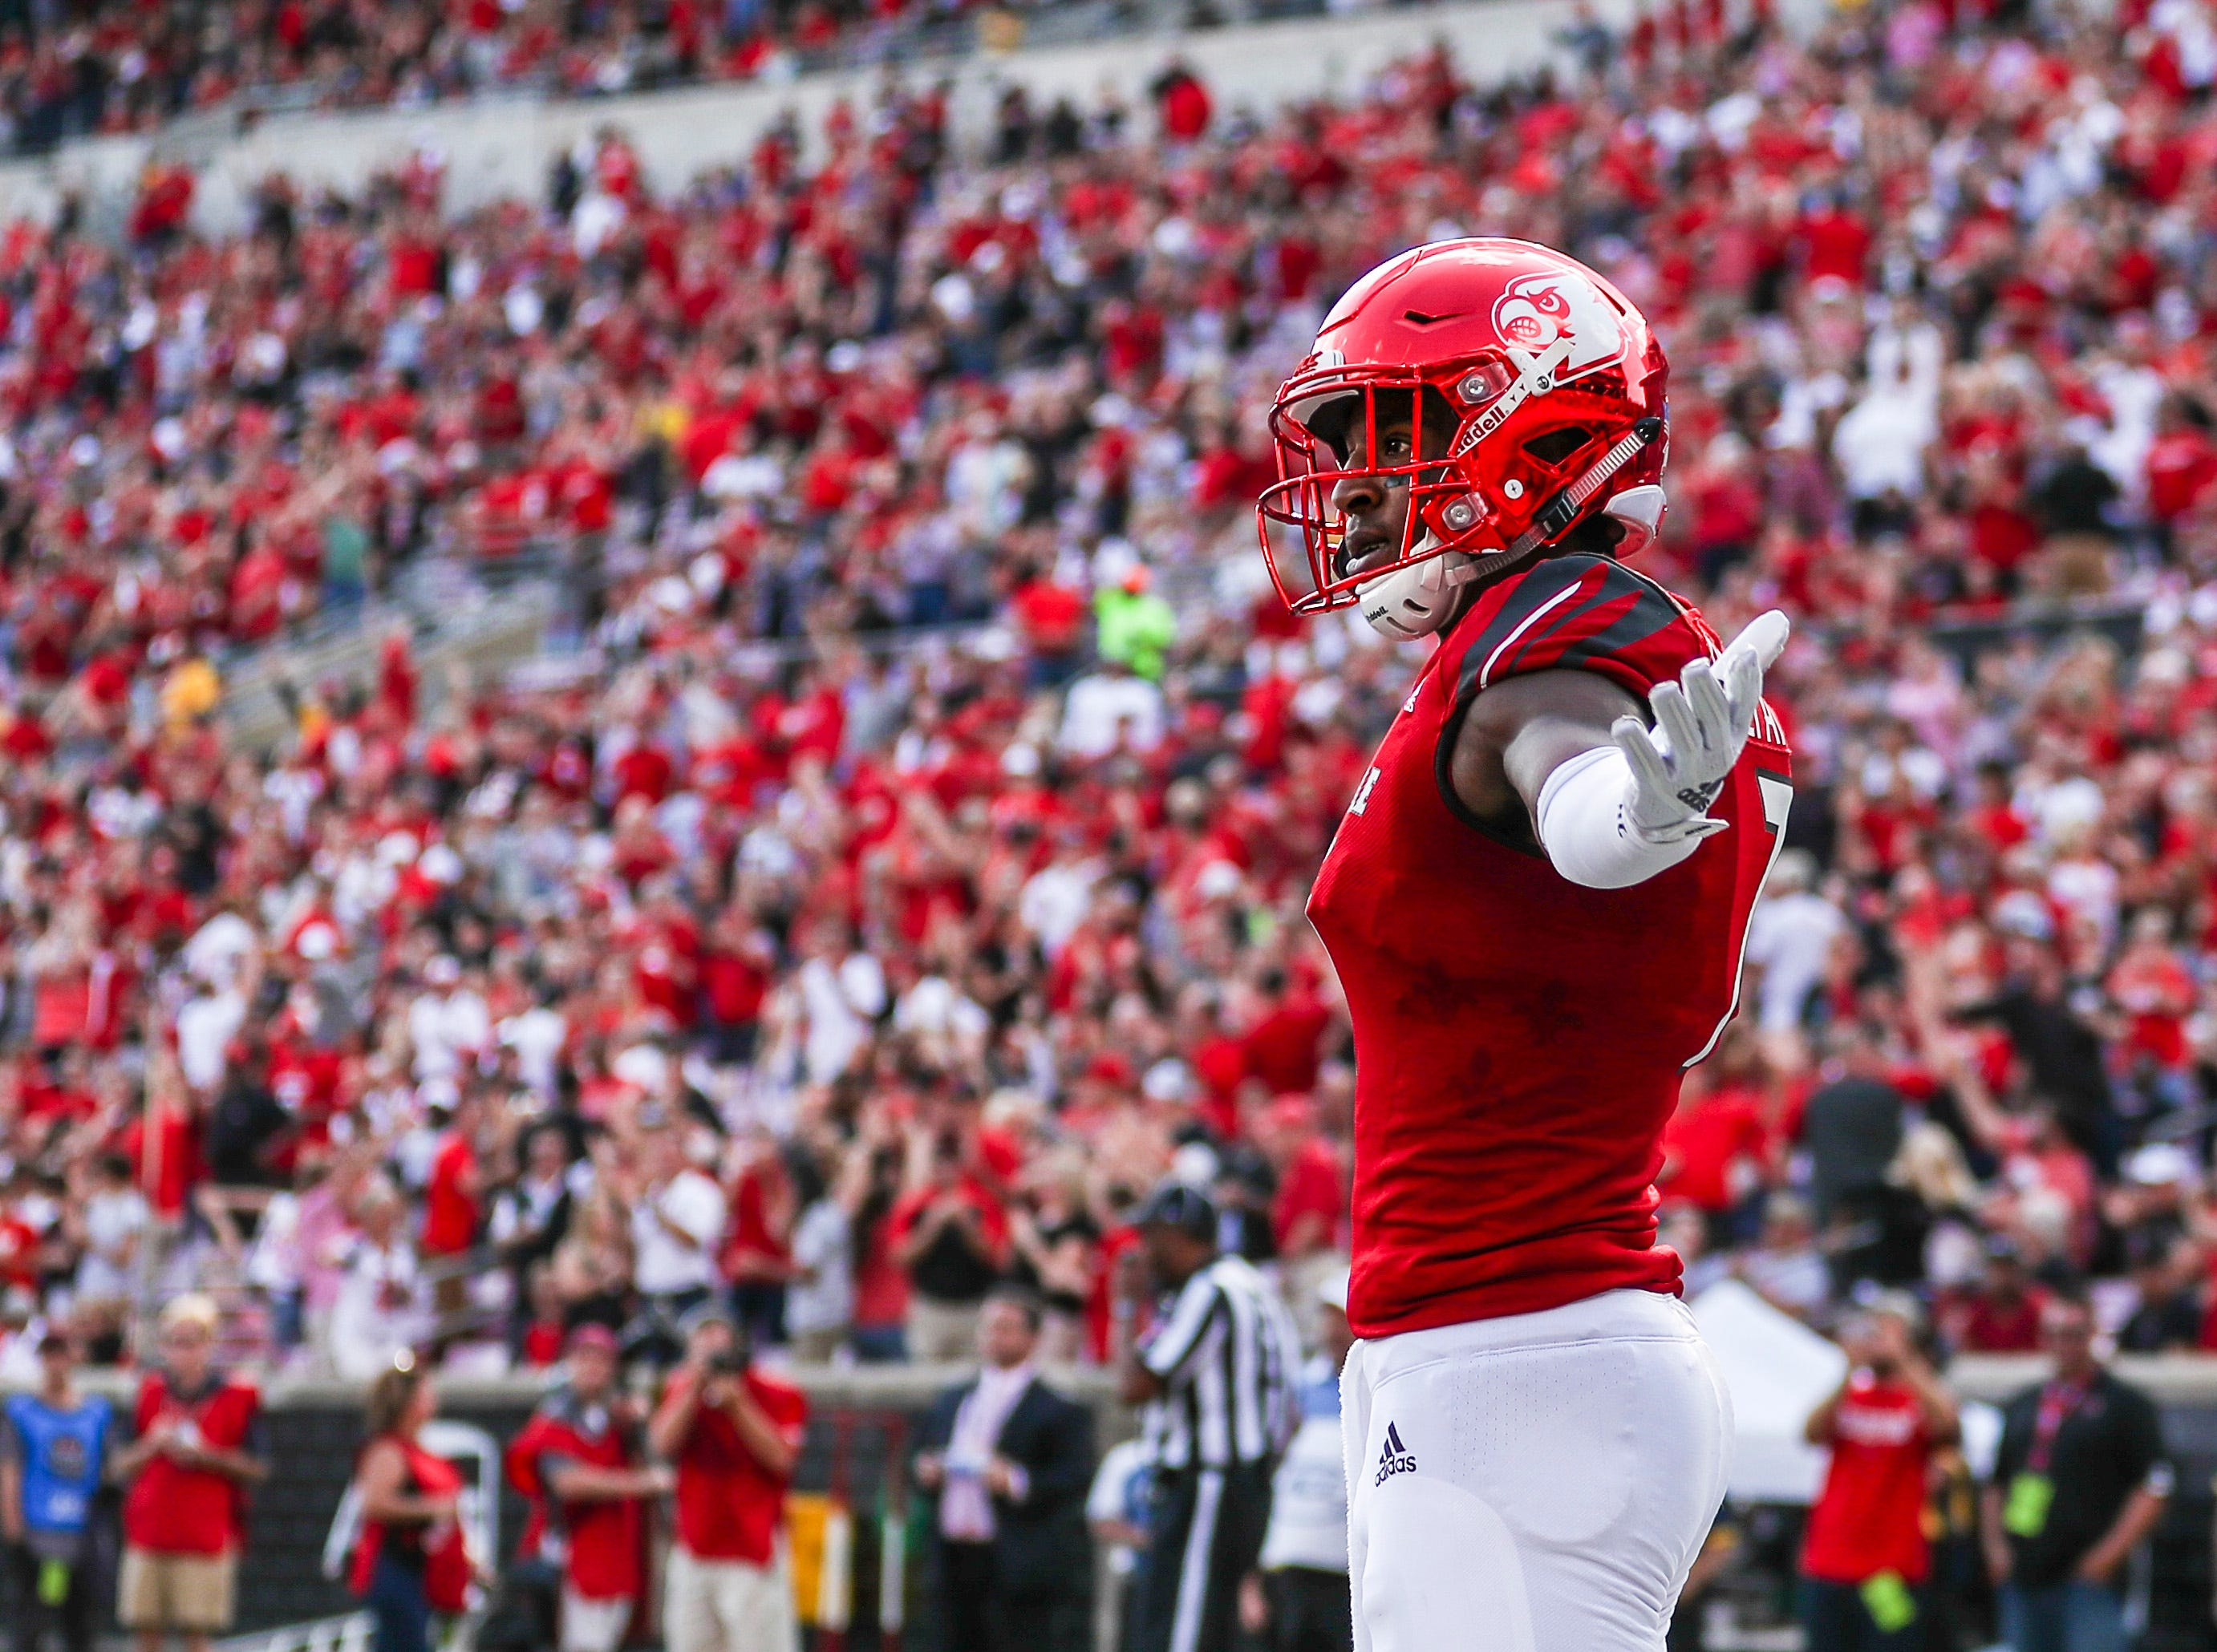 Louisville's Dez Fitzpatrick celebrates after making the late second-quarter catch to put the Cards up over Florida State 21-7 at the half Saturday afternoon. Sept. 29, 2018